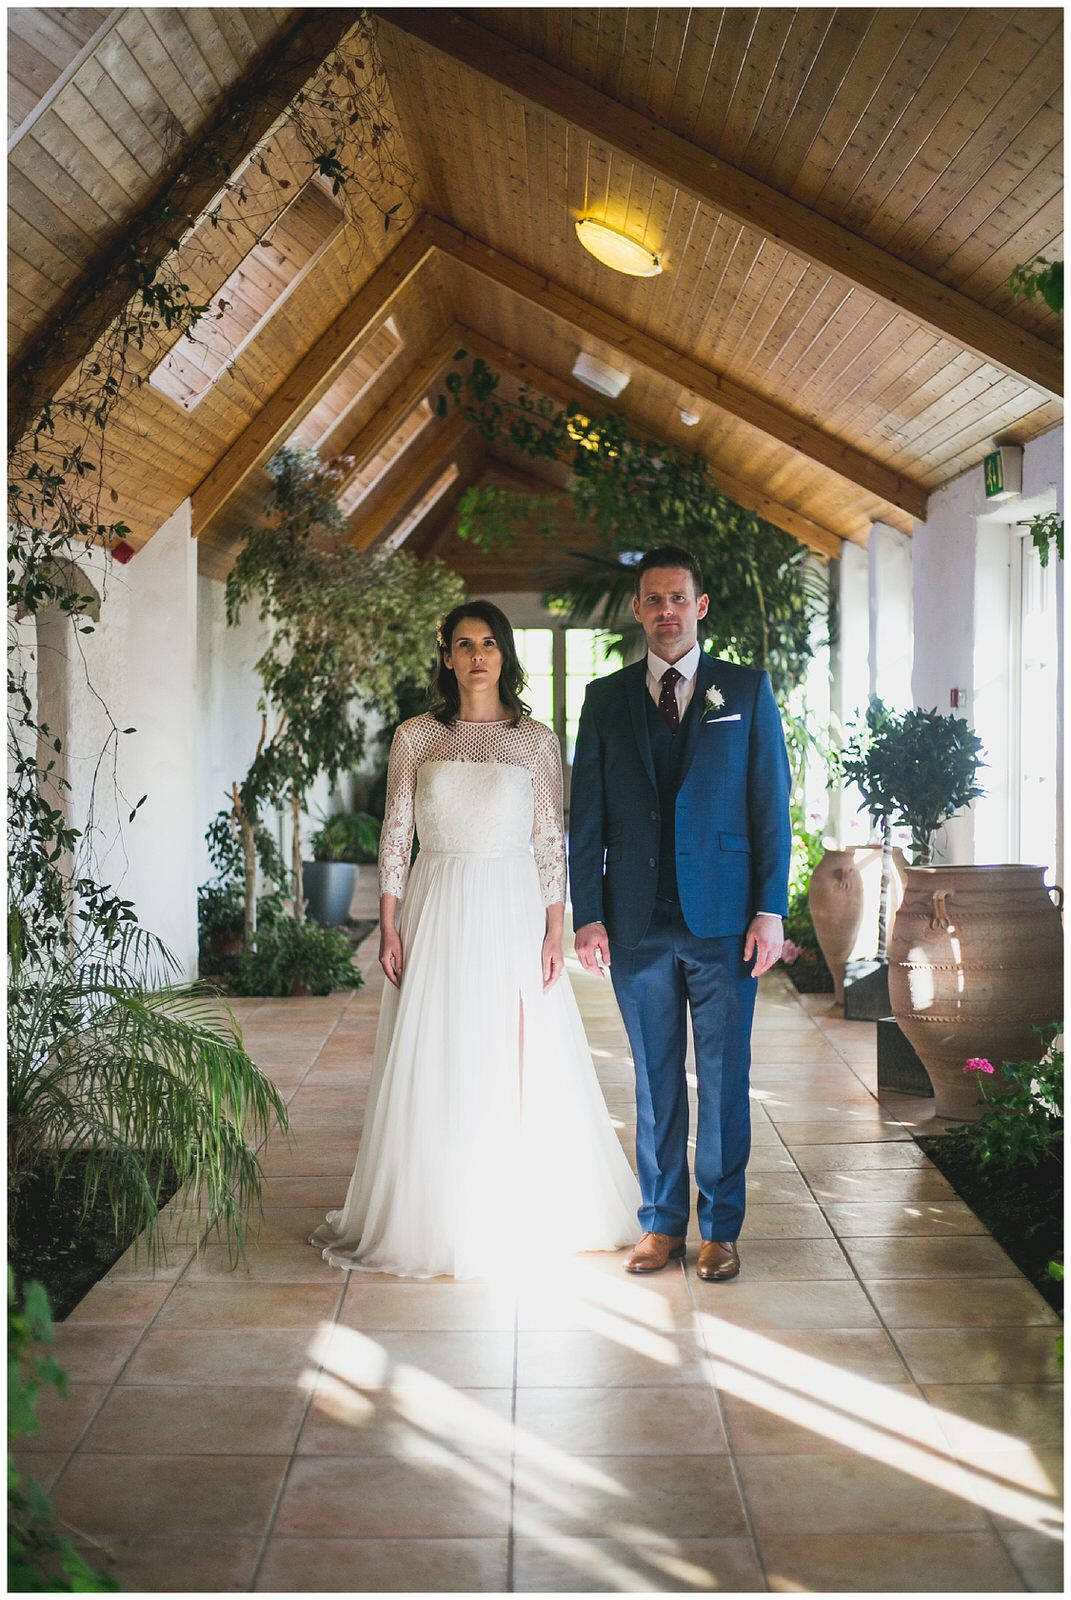 Modern & Stylish Rathsallagh House Wedding